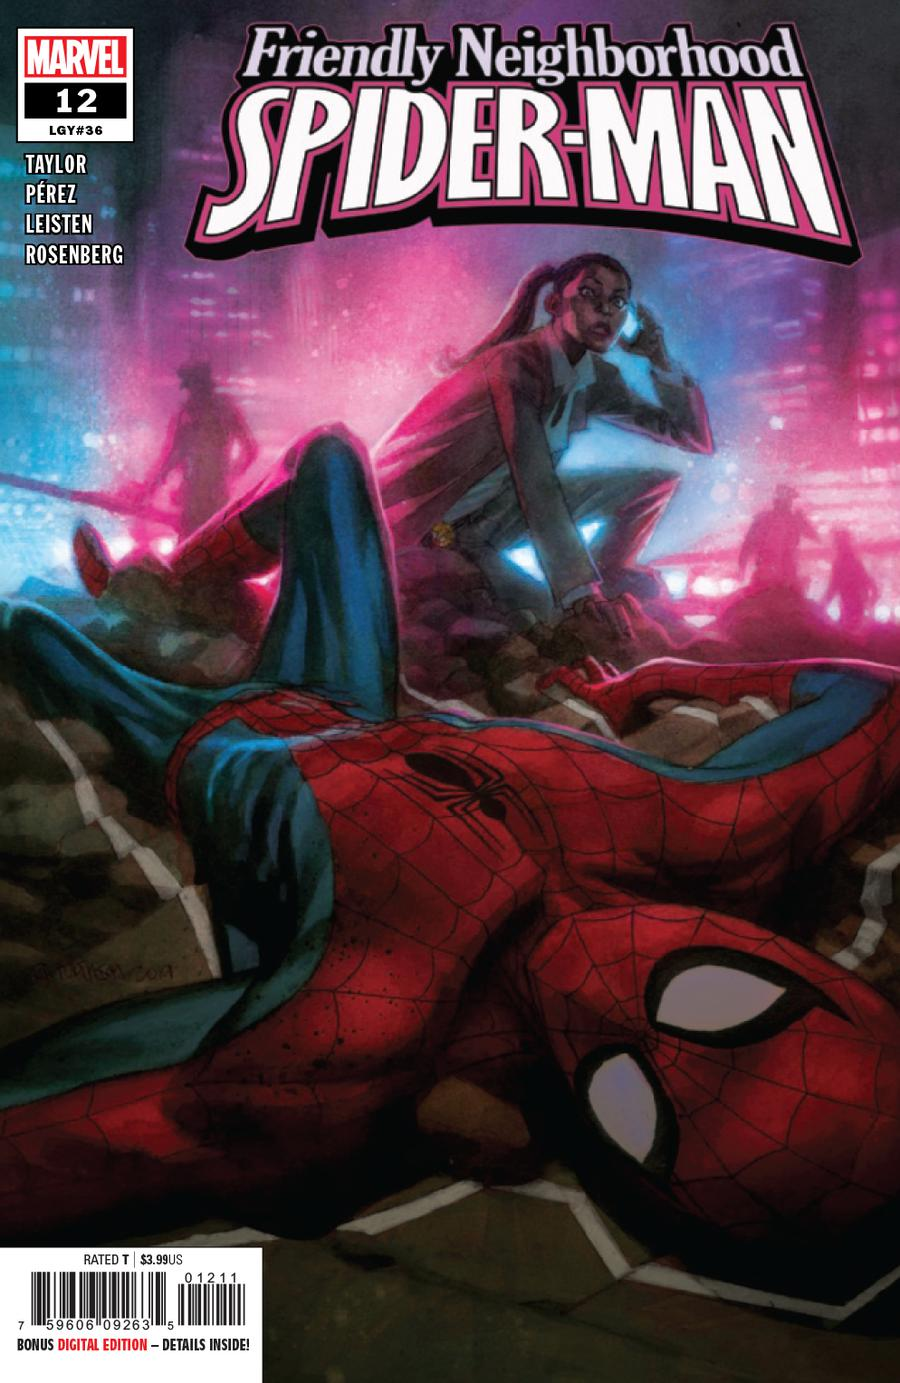 Friendly Neighborhood Spider-Man Vol 2 #12 Cover A Regular Andrew C Robinson Cover